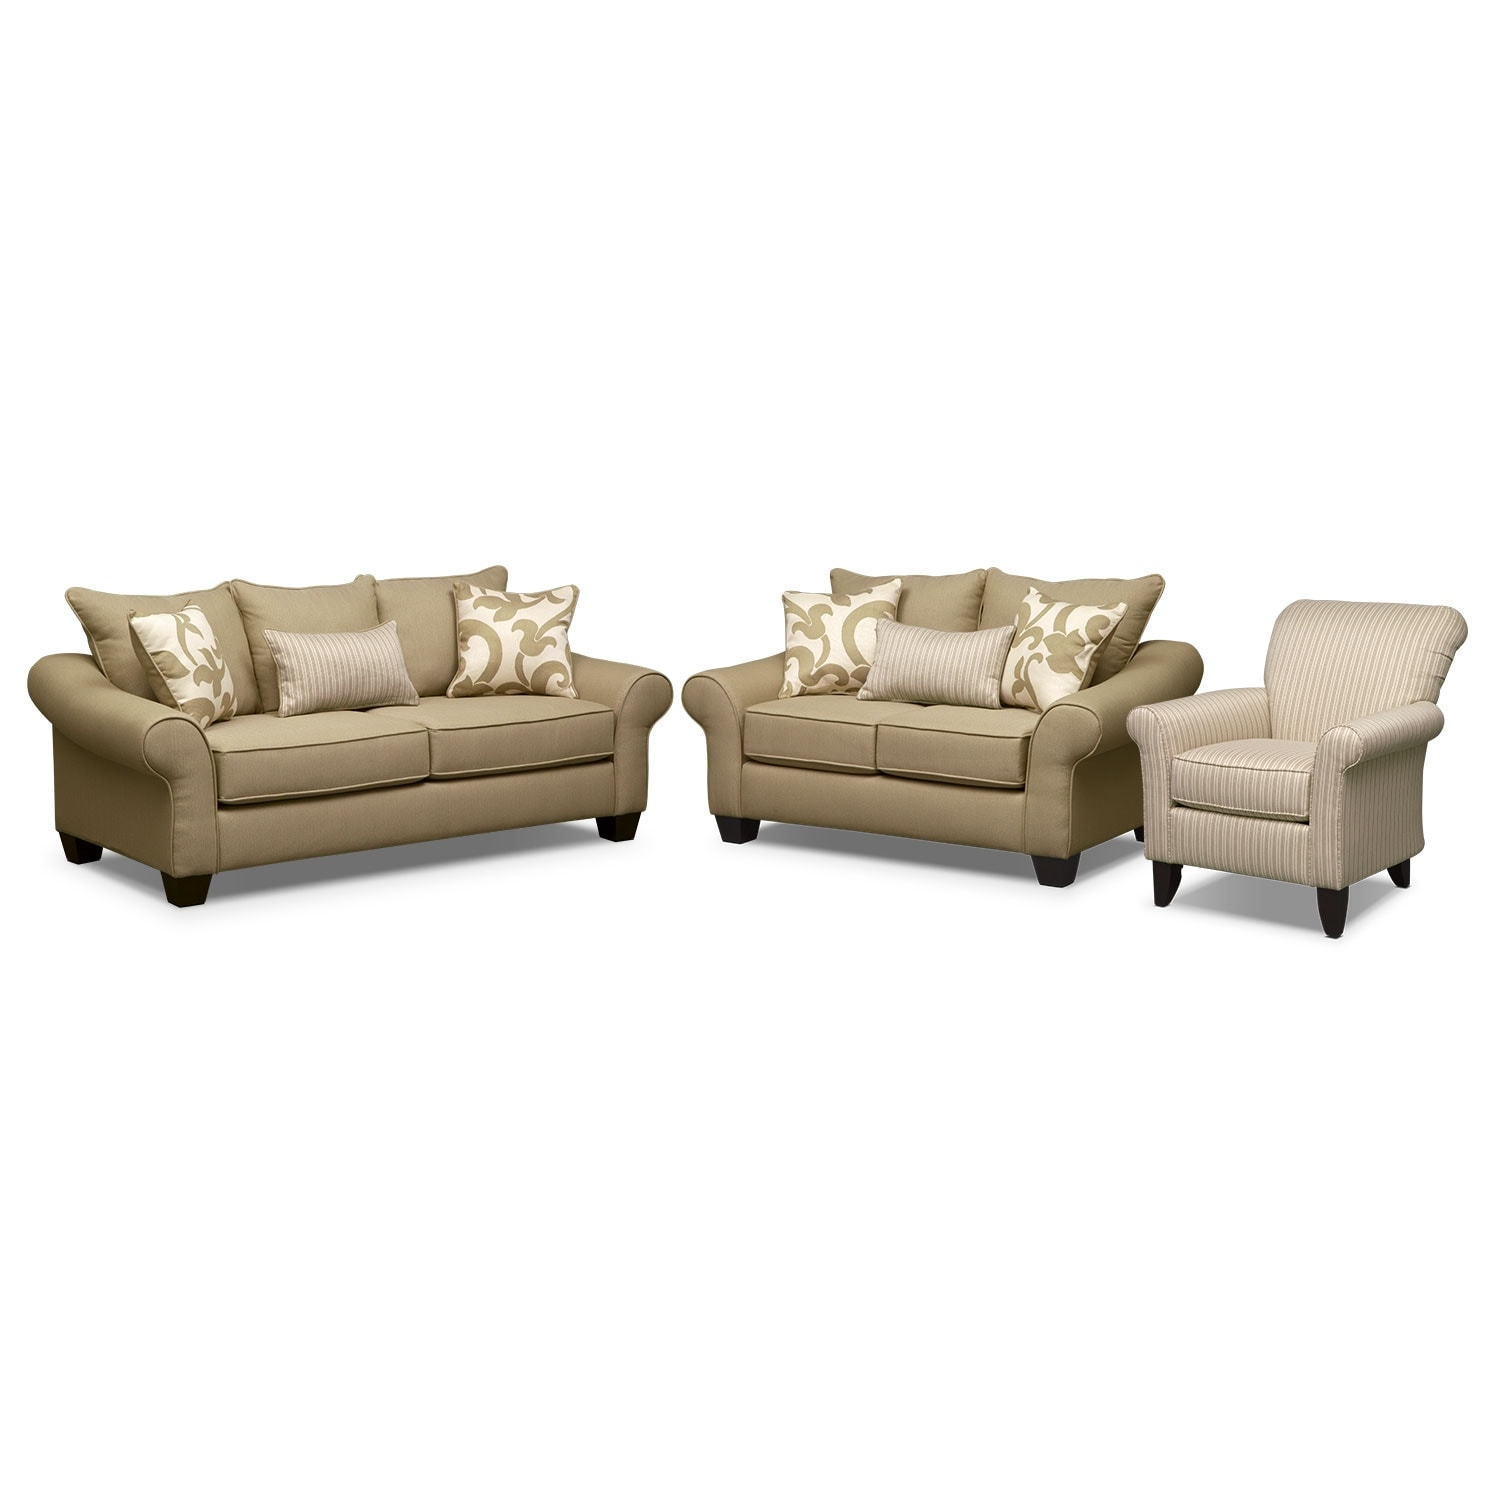 Living Room Furniture - Colette Full Innerspring Sleeper Sofa, Loveseat and Accent Chair Set - Khaki